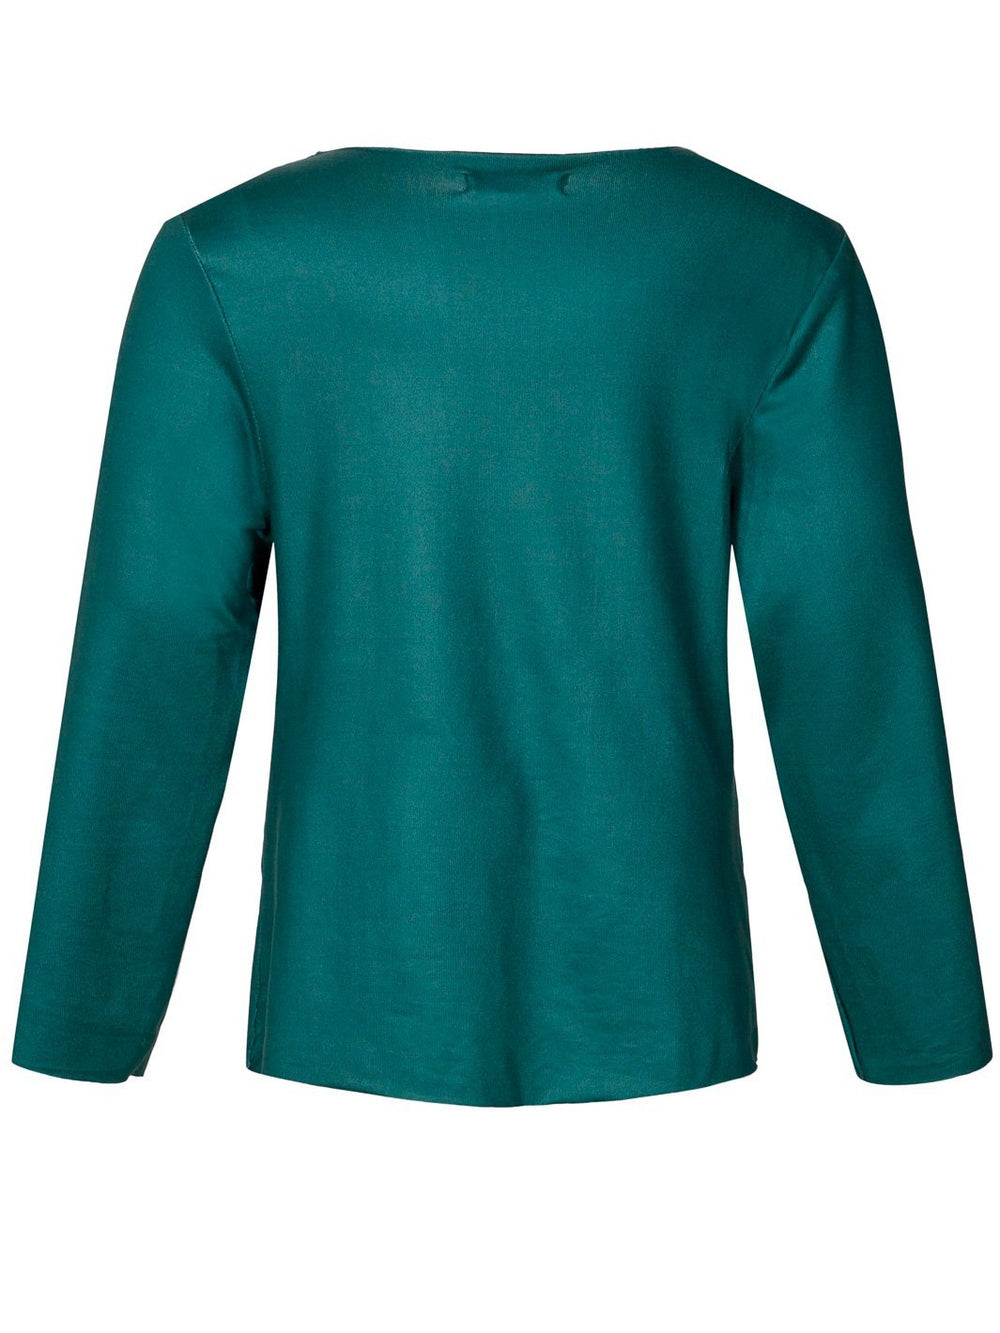 Forudbestilling - Liberté Alma LS top (KIDS) x-mas 20 green (slut november) - Online-Mode